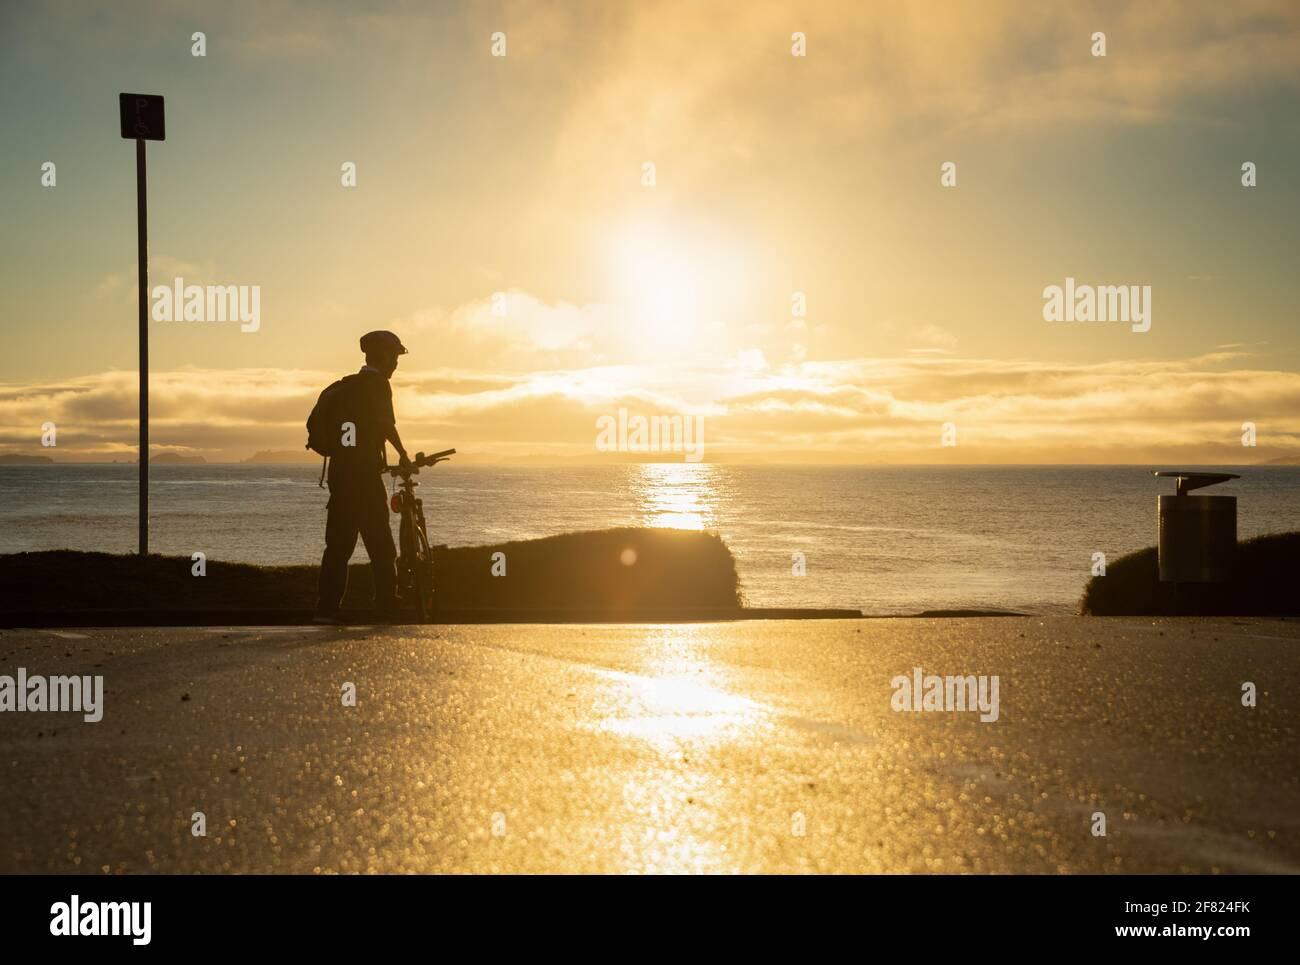 Silhouette image of a cyclist getting ready to ride on the beach at sunrise Stock Photo